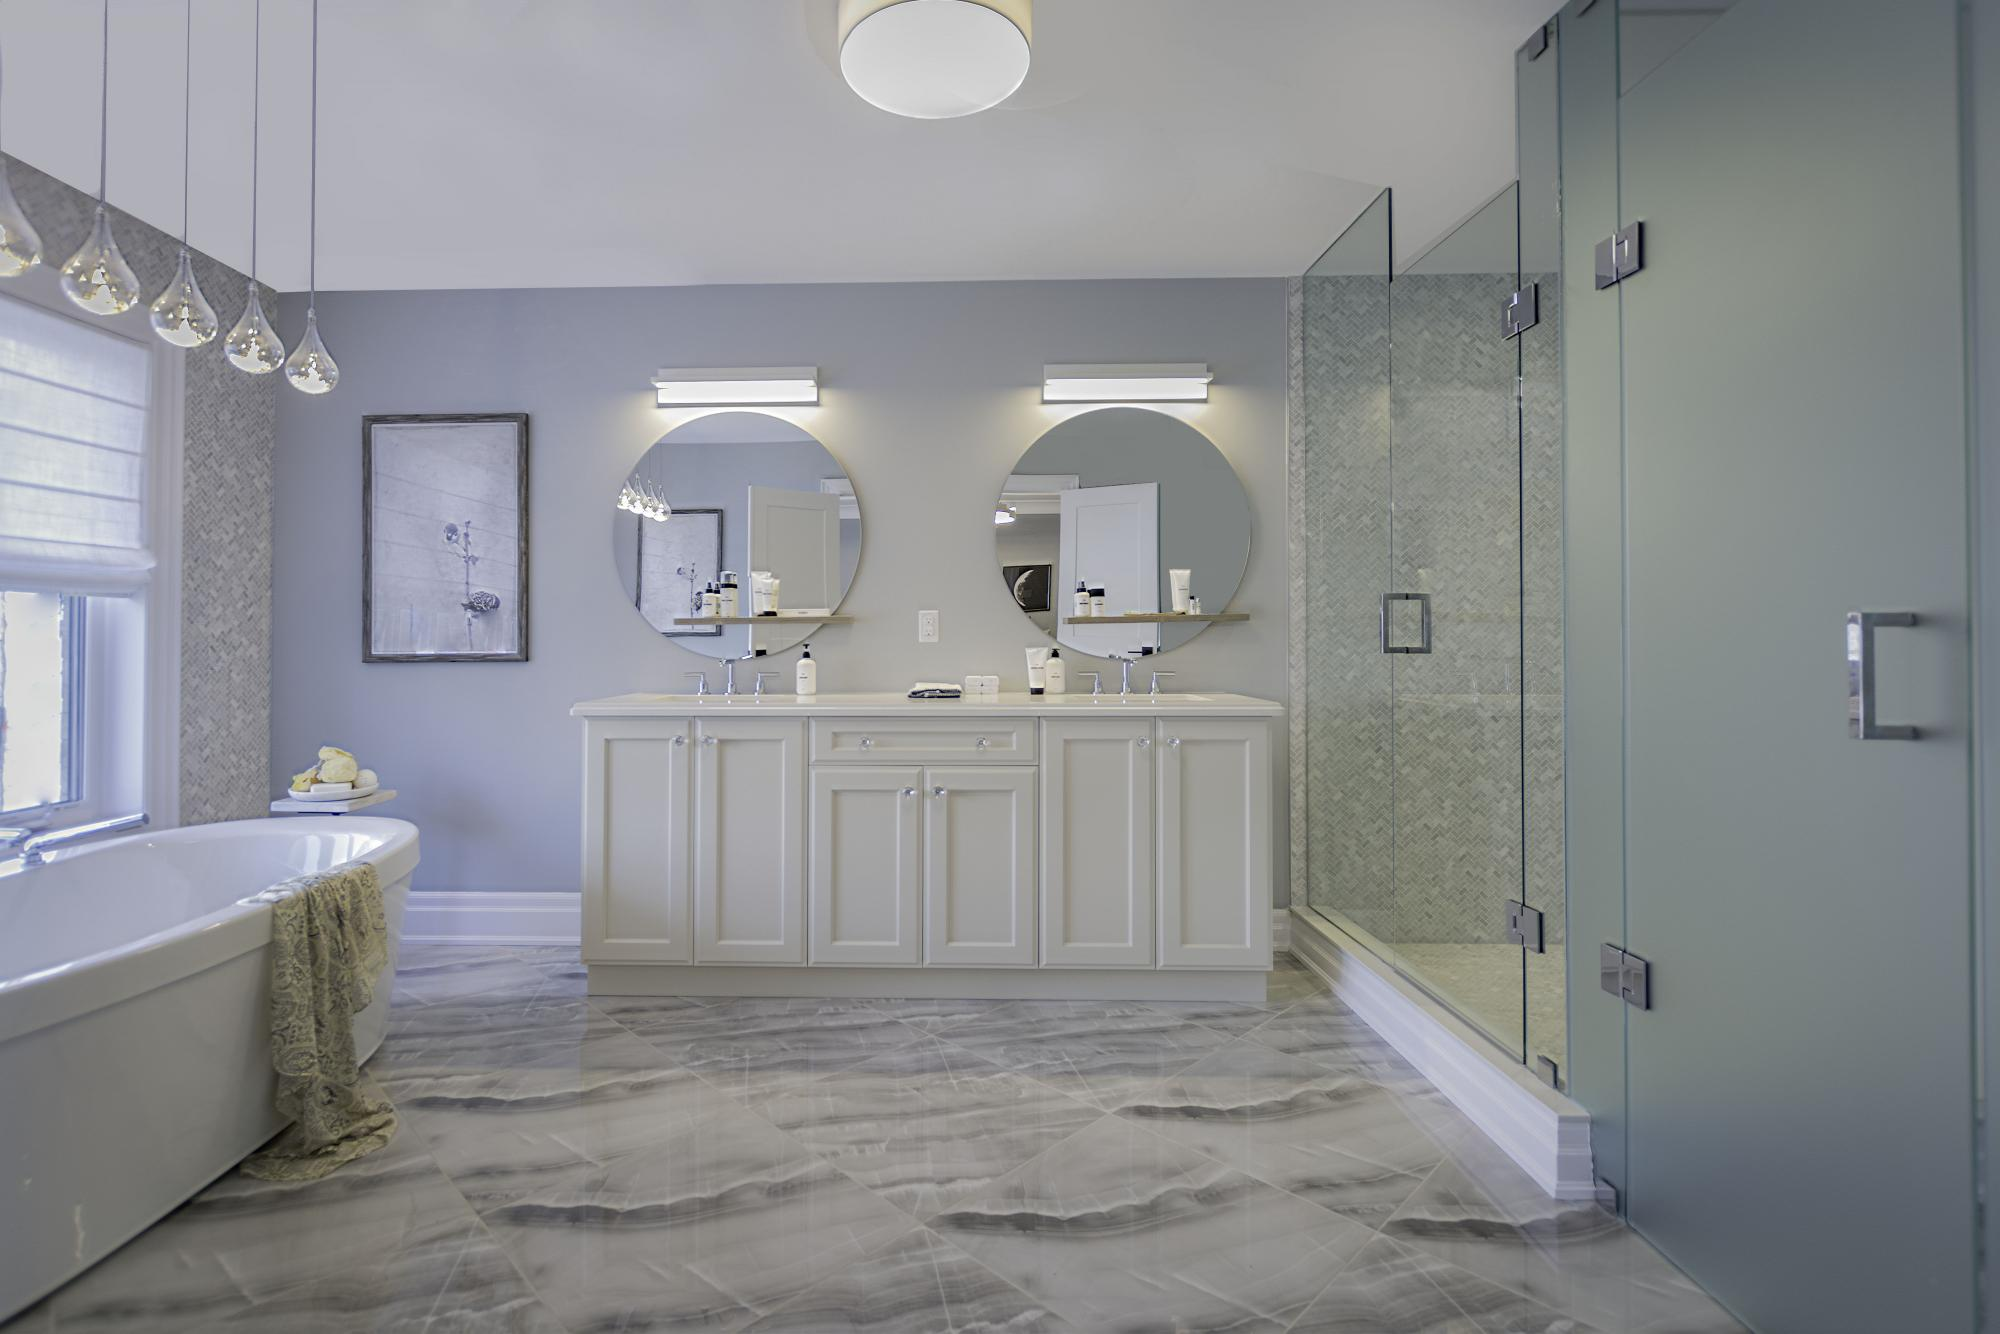 Beautiful white bathroom with white marble floors, a deep soaker tub and a large shower. Two mirrors with two sinks